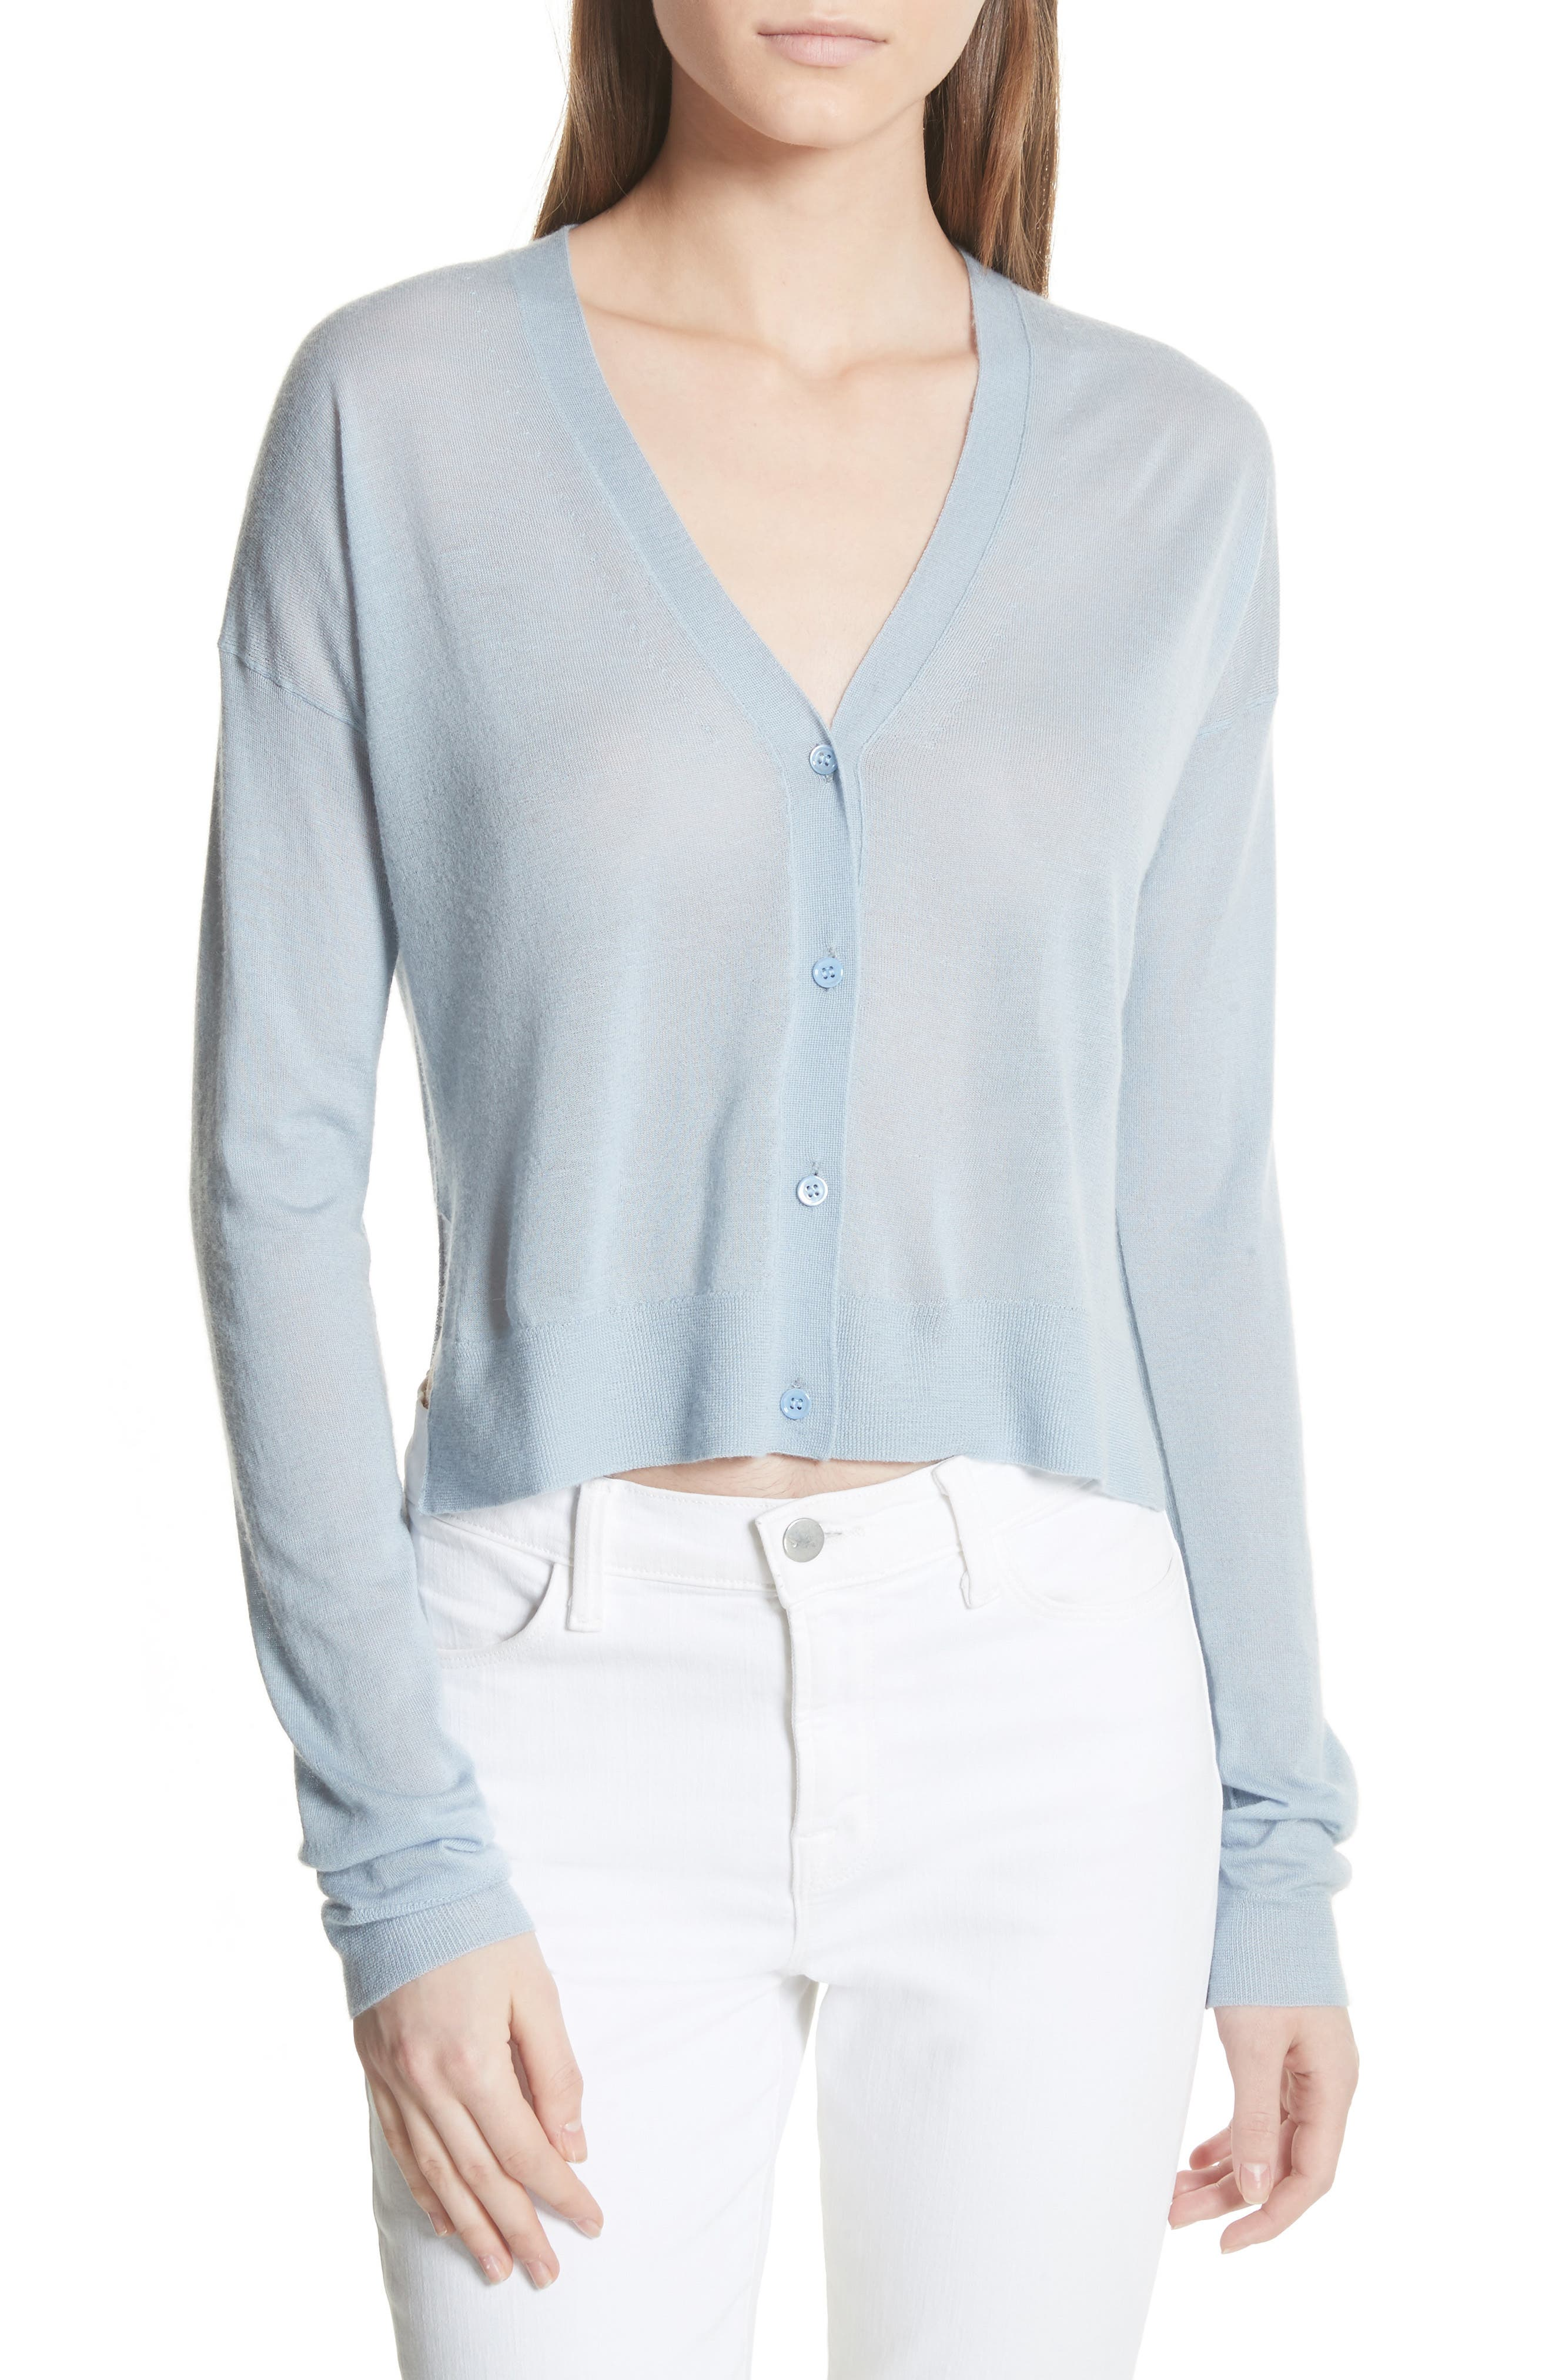 Hanelee Featherweight Cashmere Cardigan,                         Main,                         color, Baby Bluebell